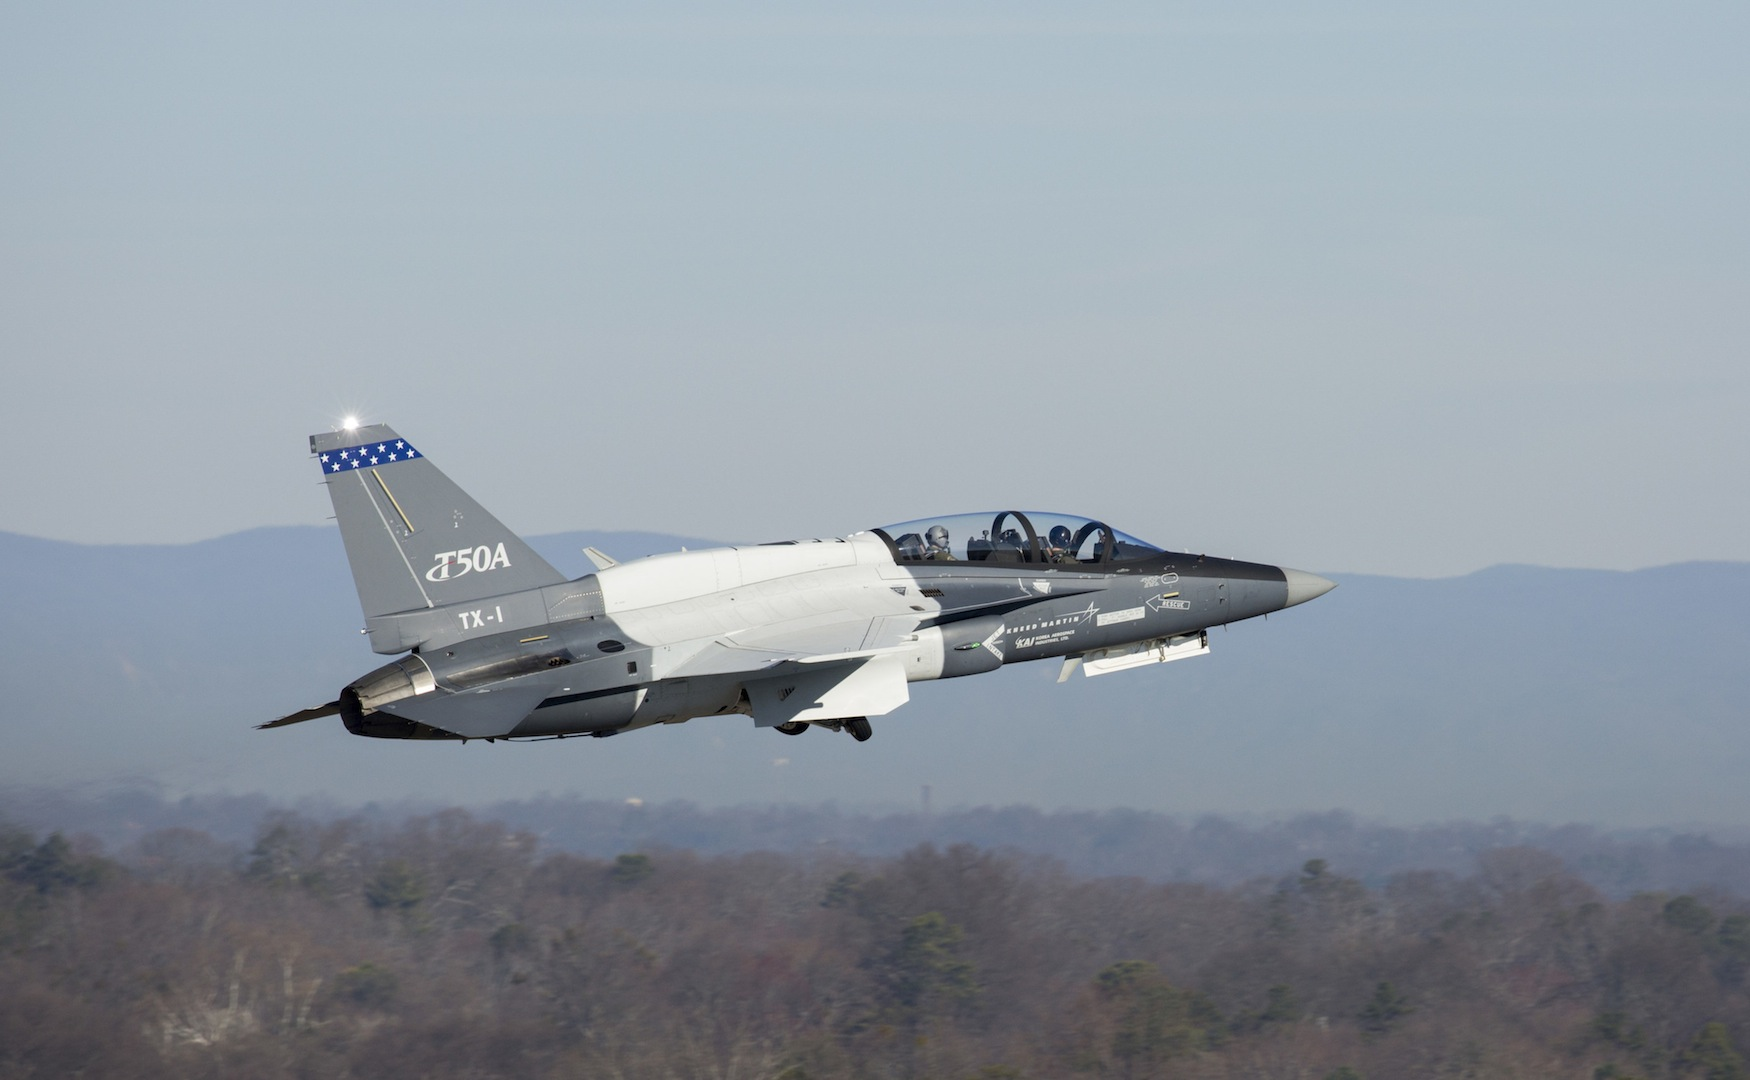 Lockheed Martin to move F-16 production to Greenville